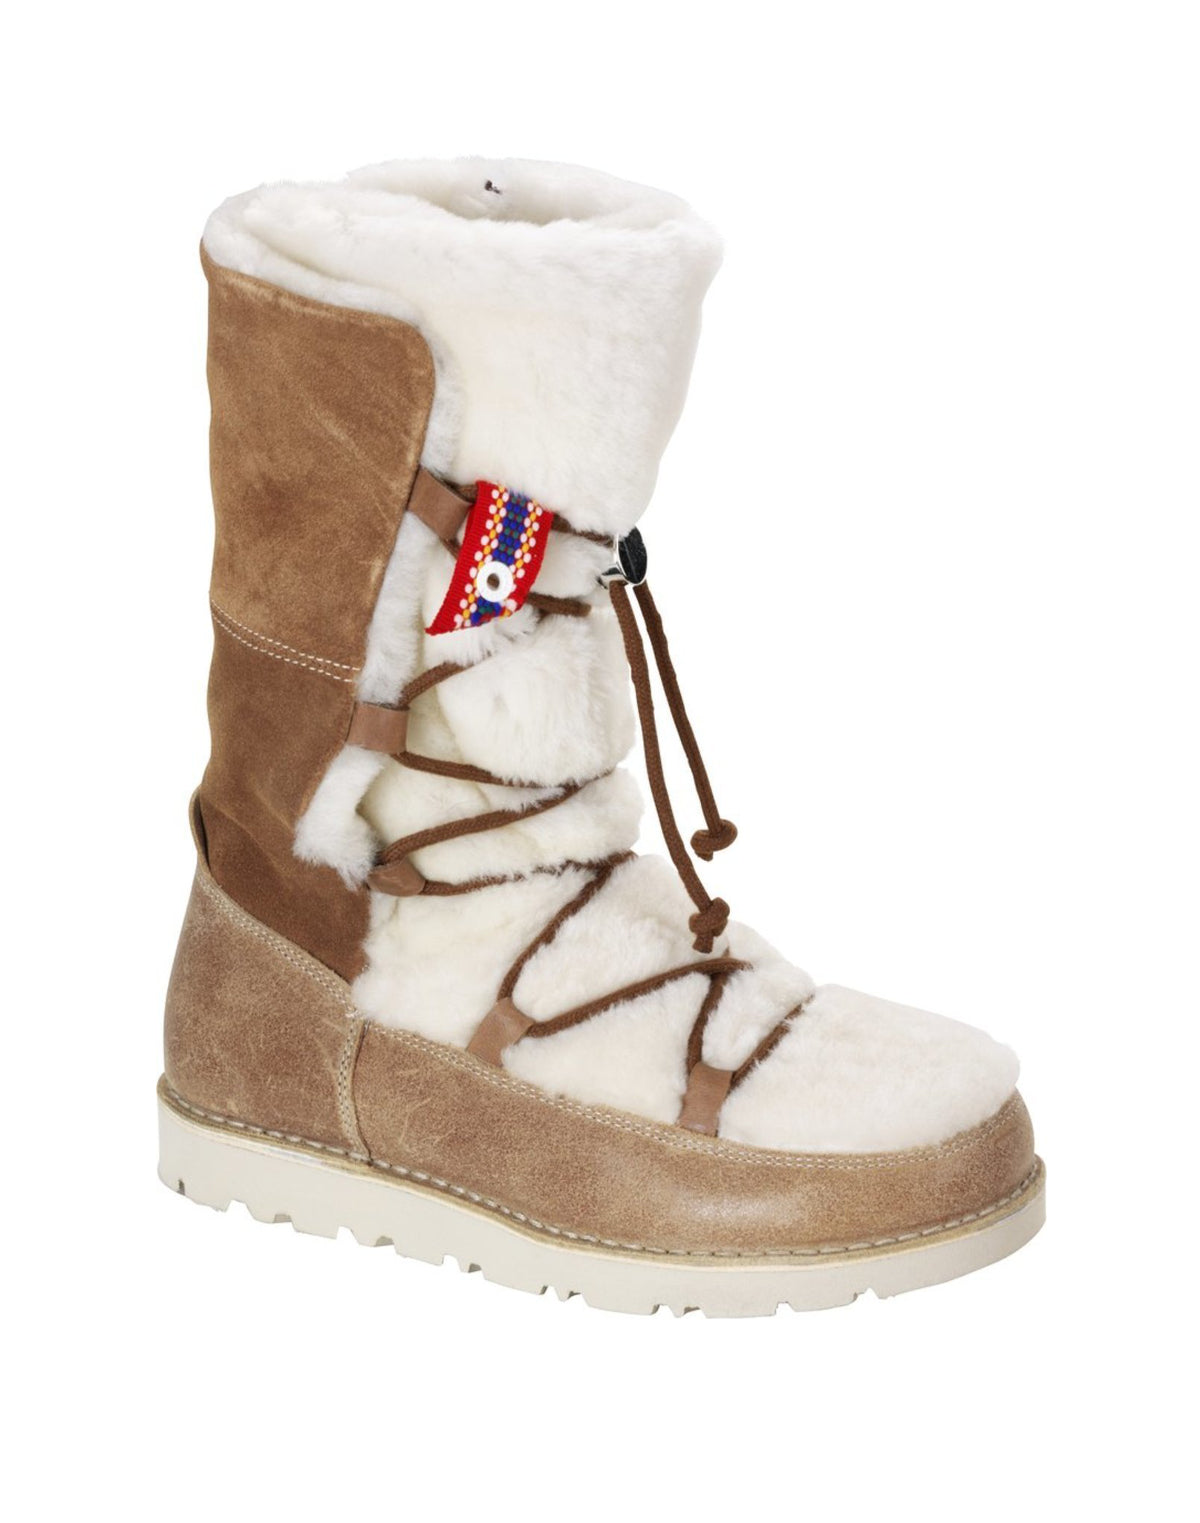 Nuuk - Nut Suede Shearling